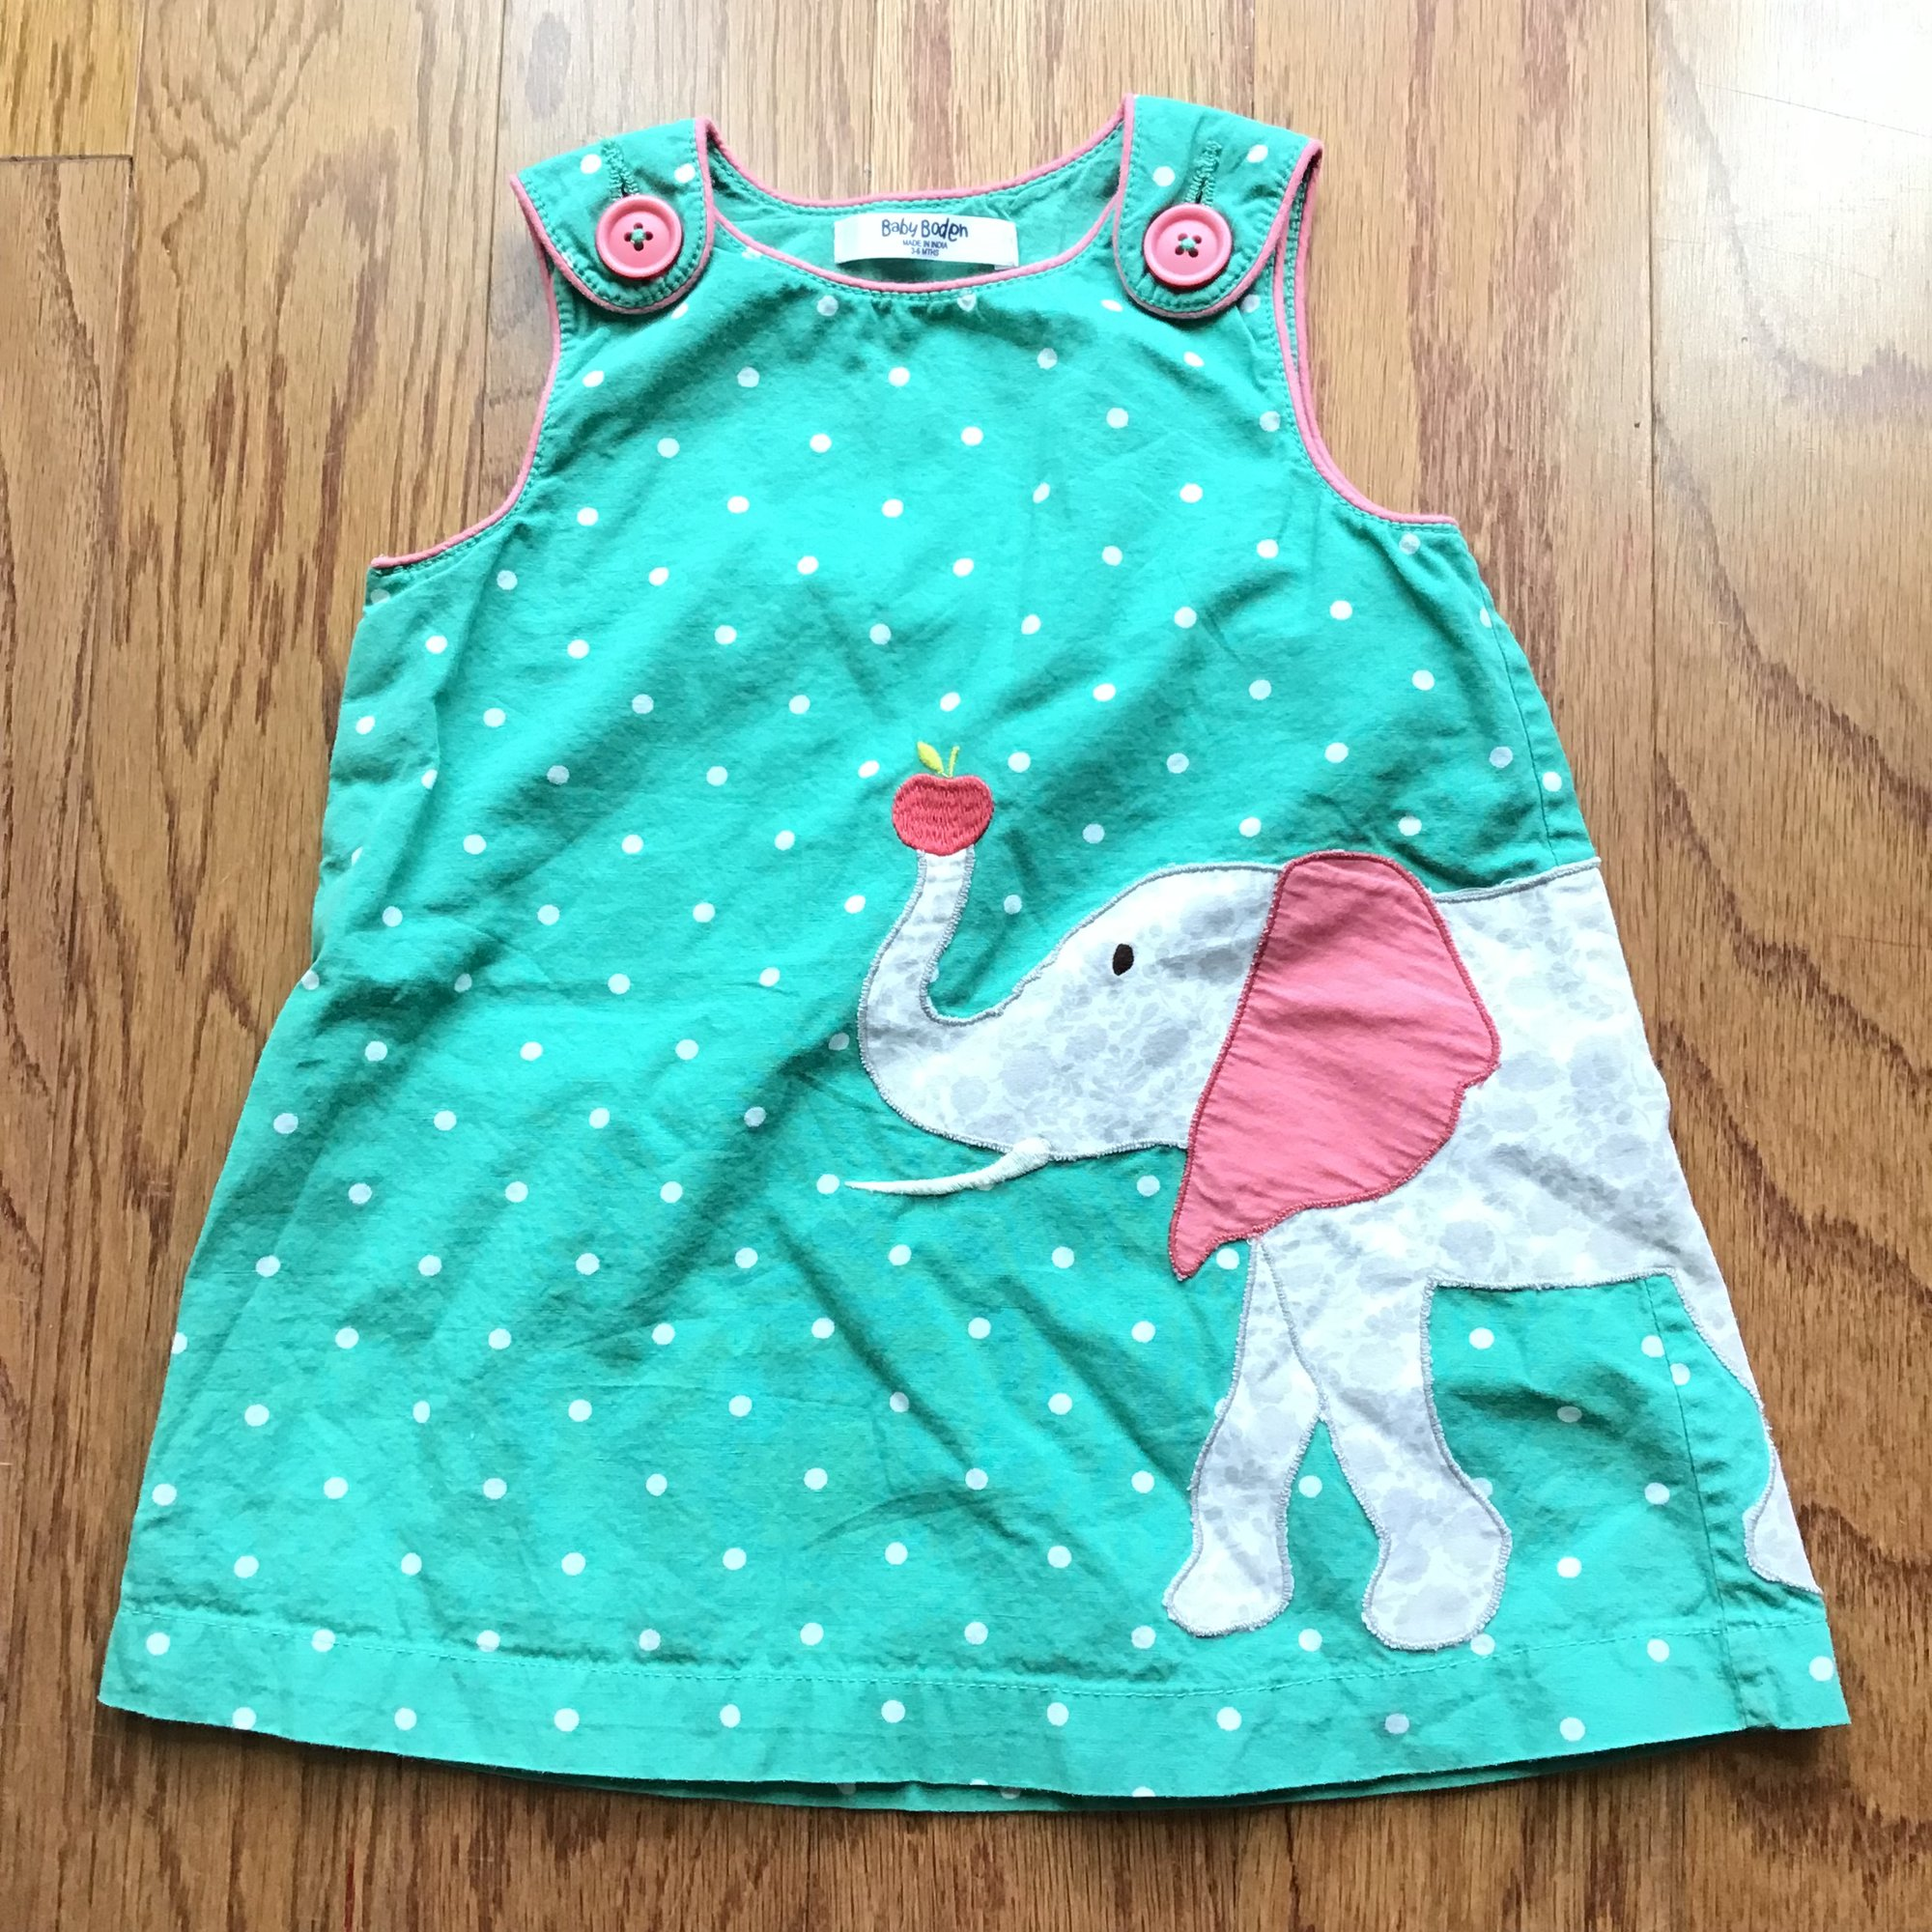 Baby Boden Dress, Green, Size: 3-6m<br /> <br /> <br /> ALL ONLINE SALES ARE FINAL. NO RETURNS OR EXCHANGES.